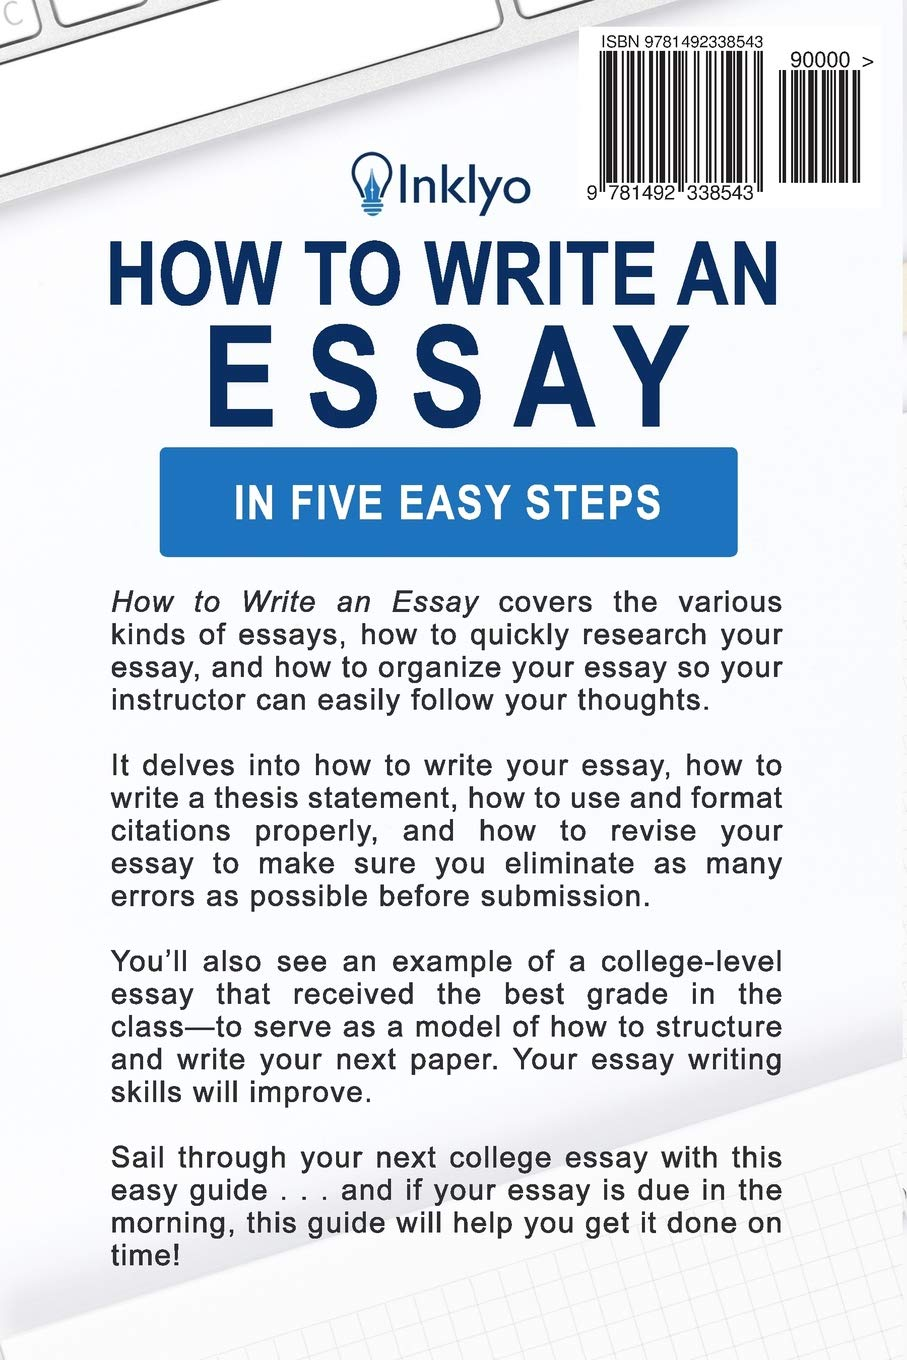 005 Essay Steps 71v7ckw5pll Formidable Writing Process To An About Yourself Full